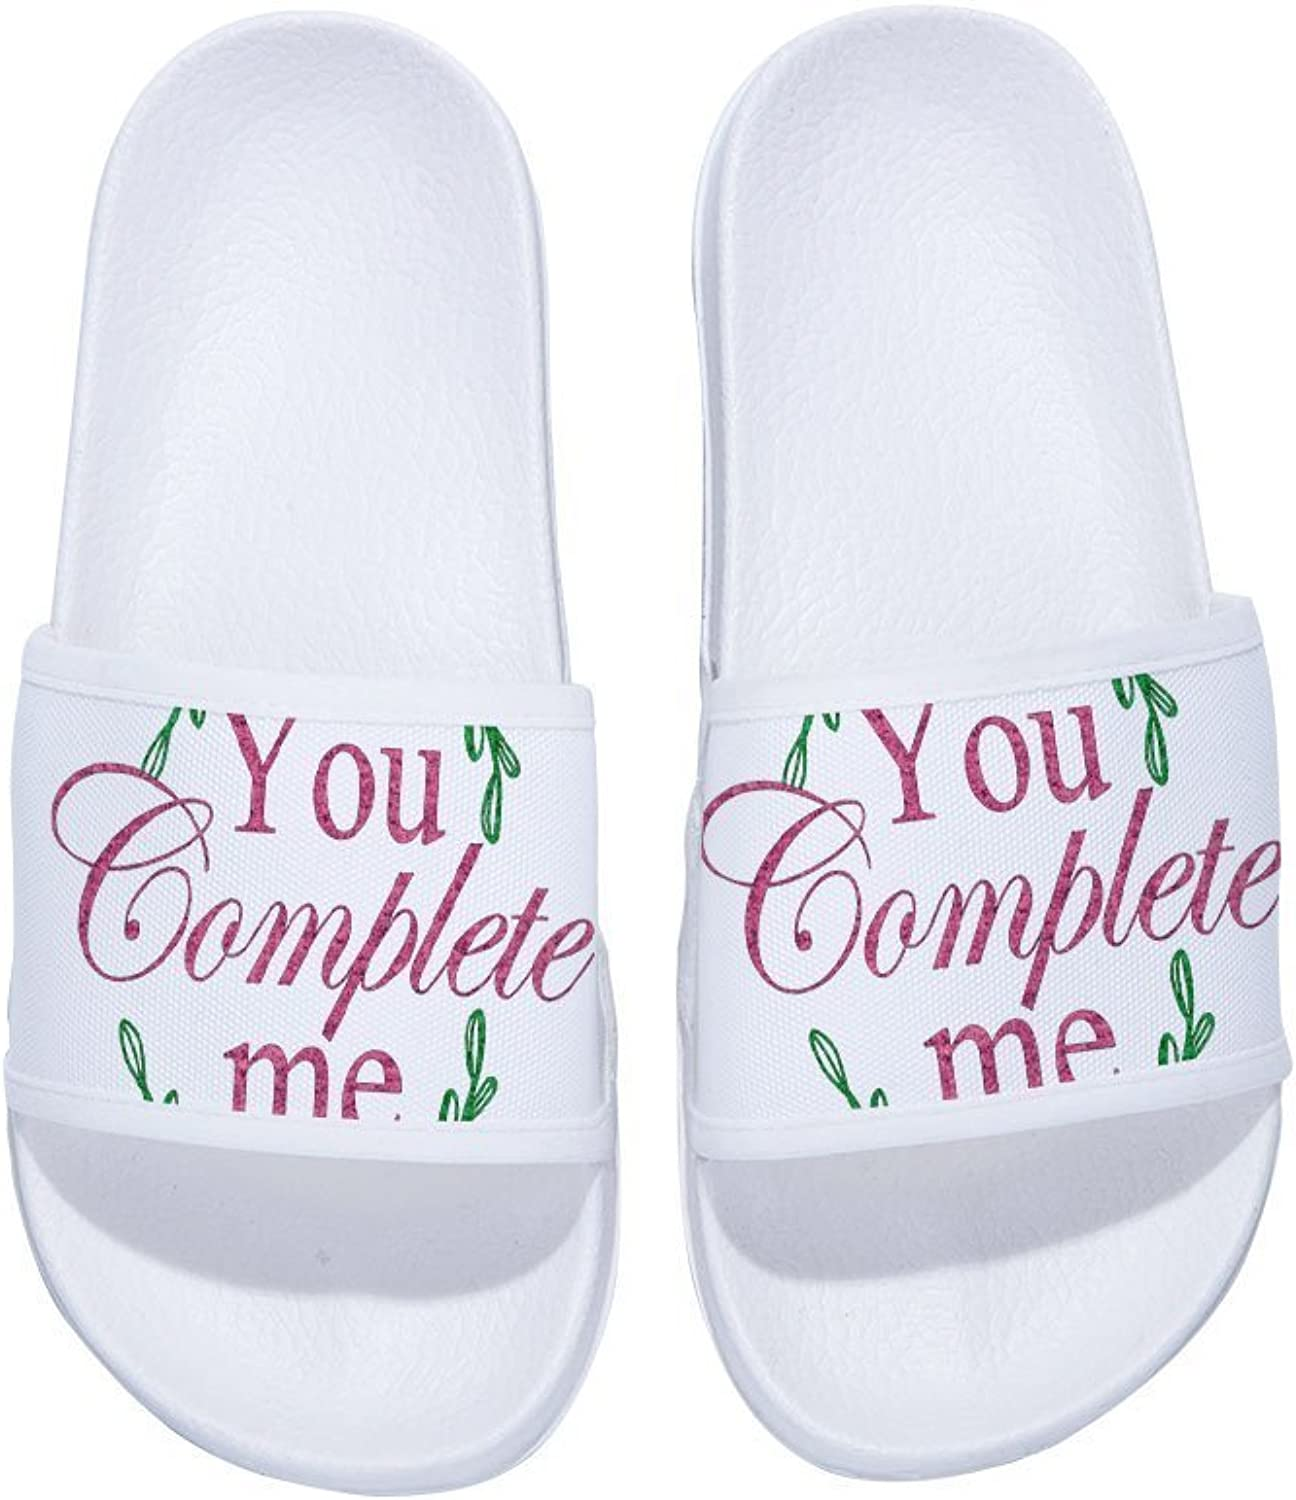 You Complete Me Cute Quote Slippers Non-Slip Quick-Drying Slippers for Women Kids Men Kids